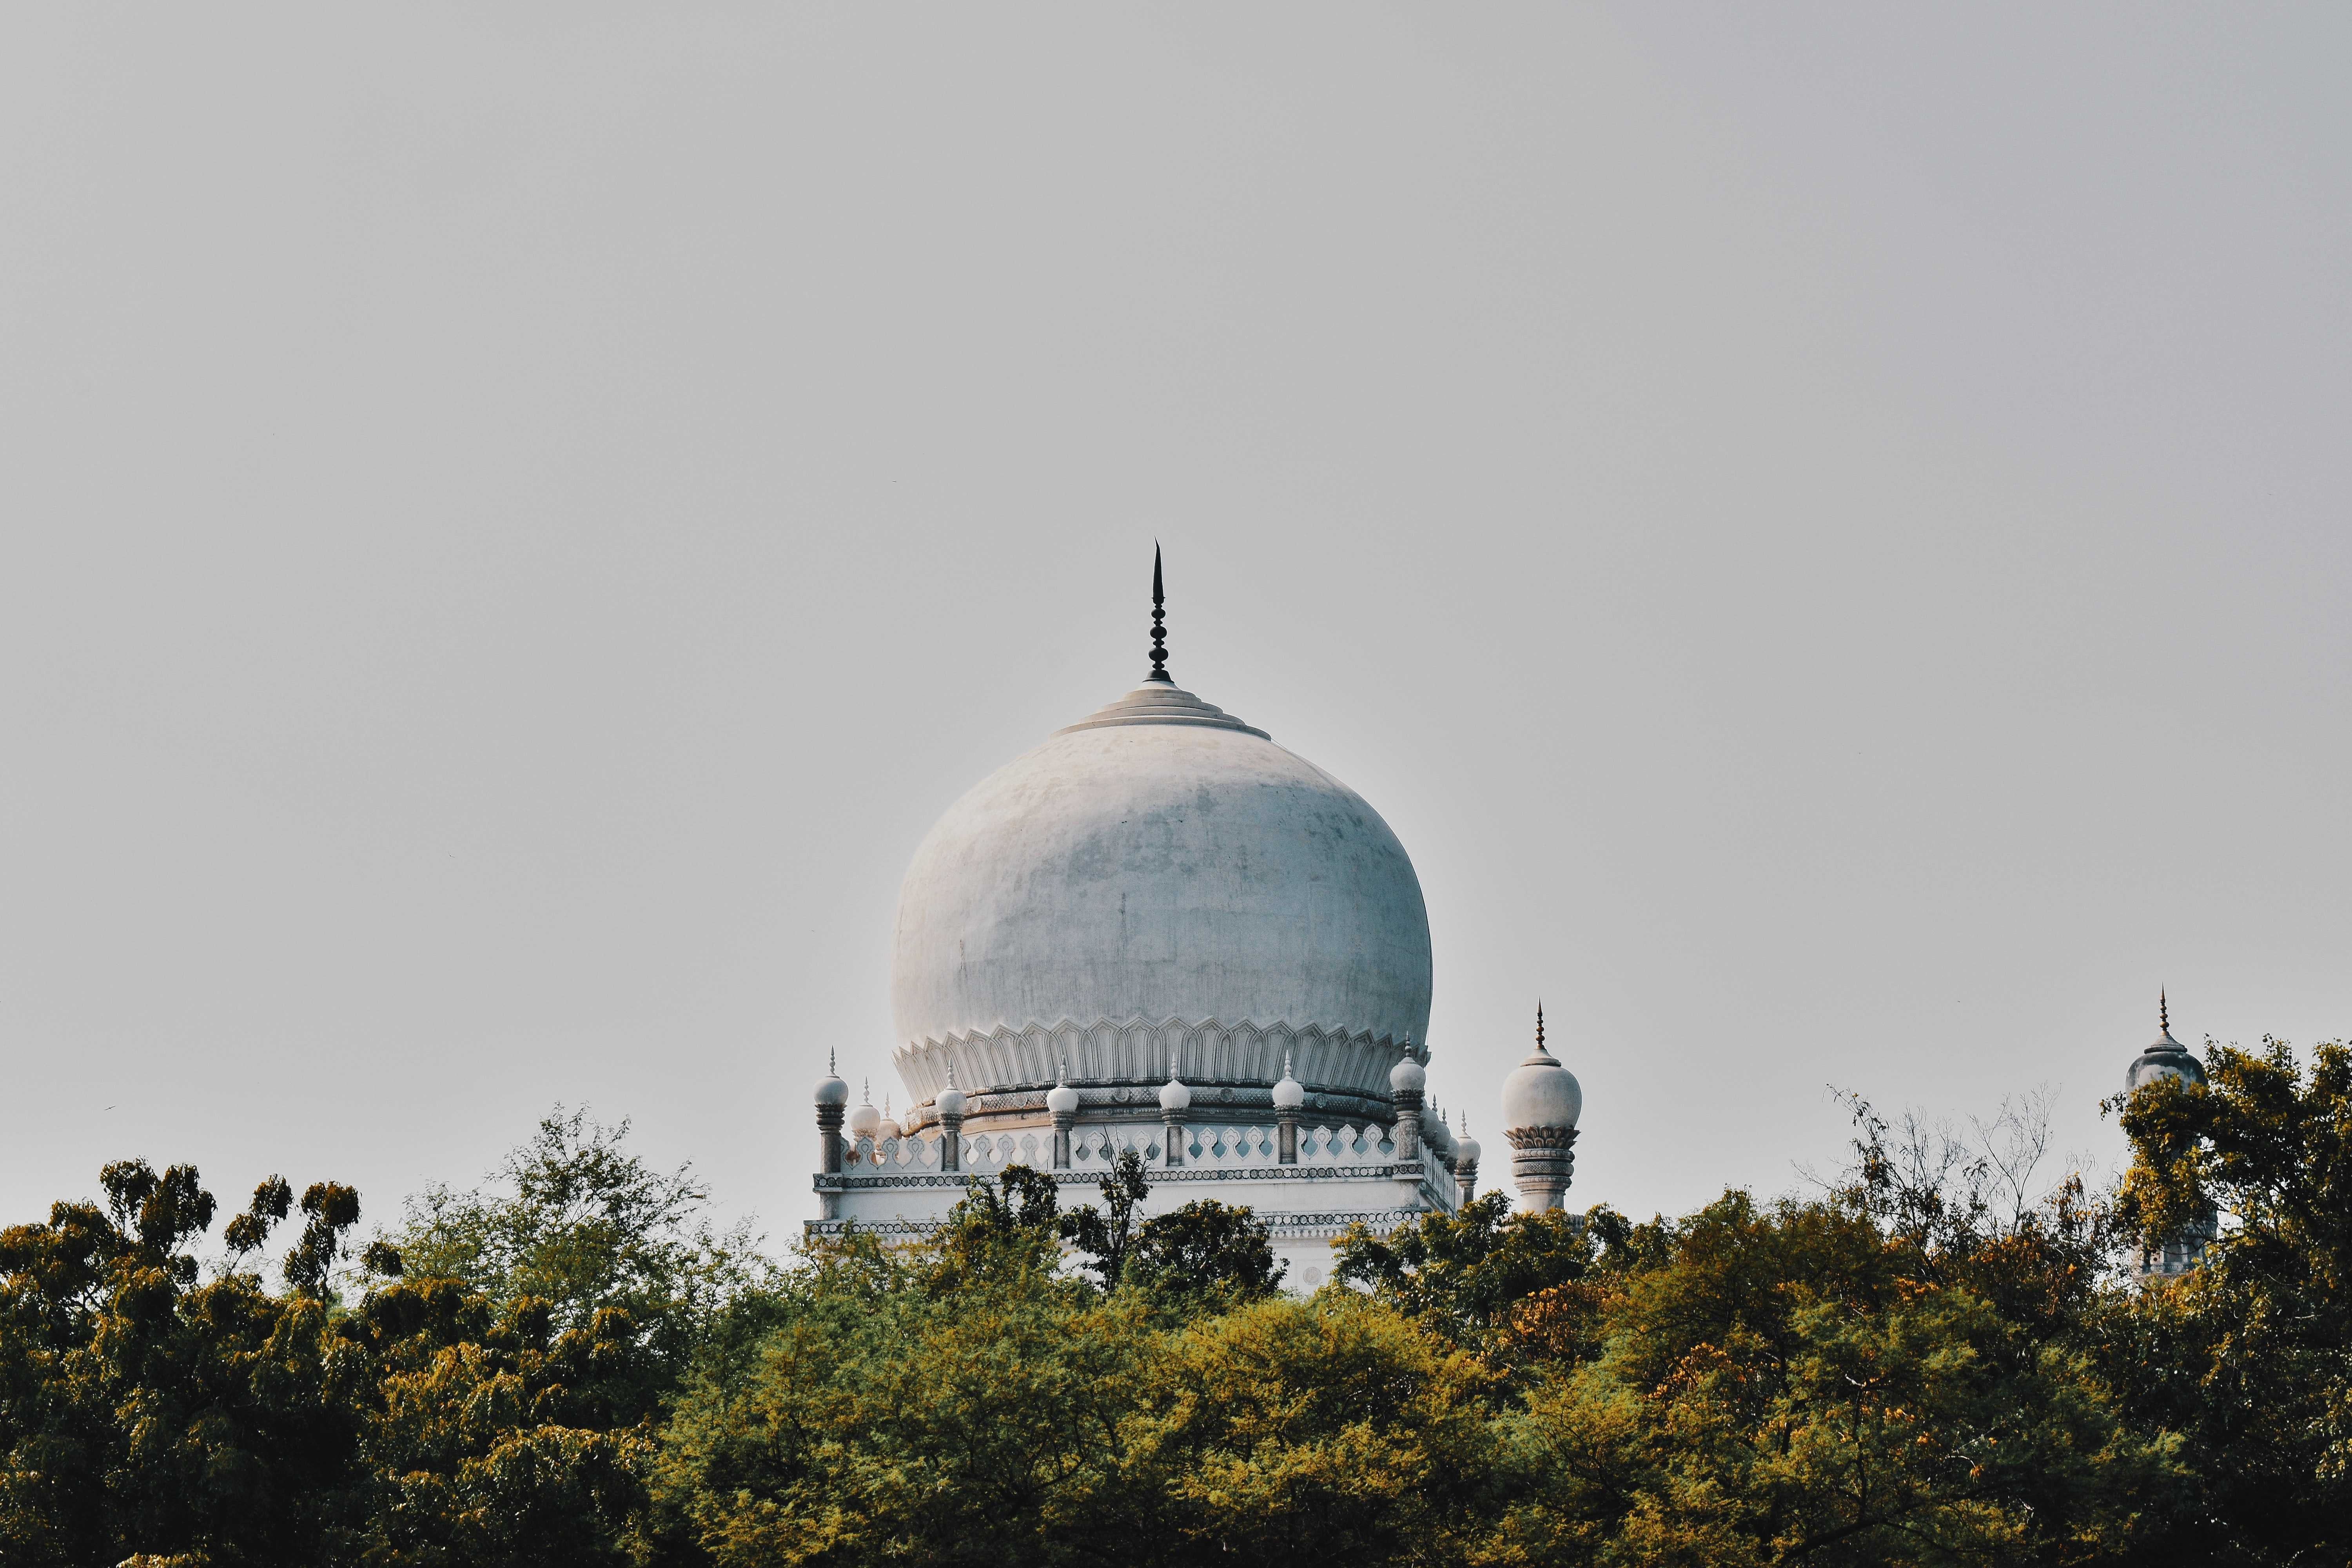 Old Tombs of Hyderabad, India